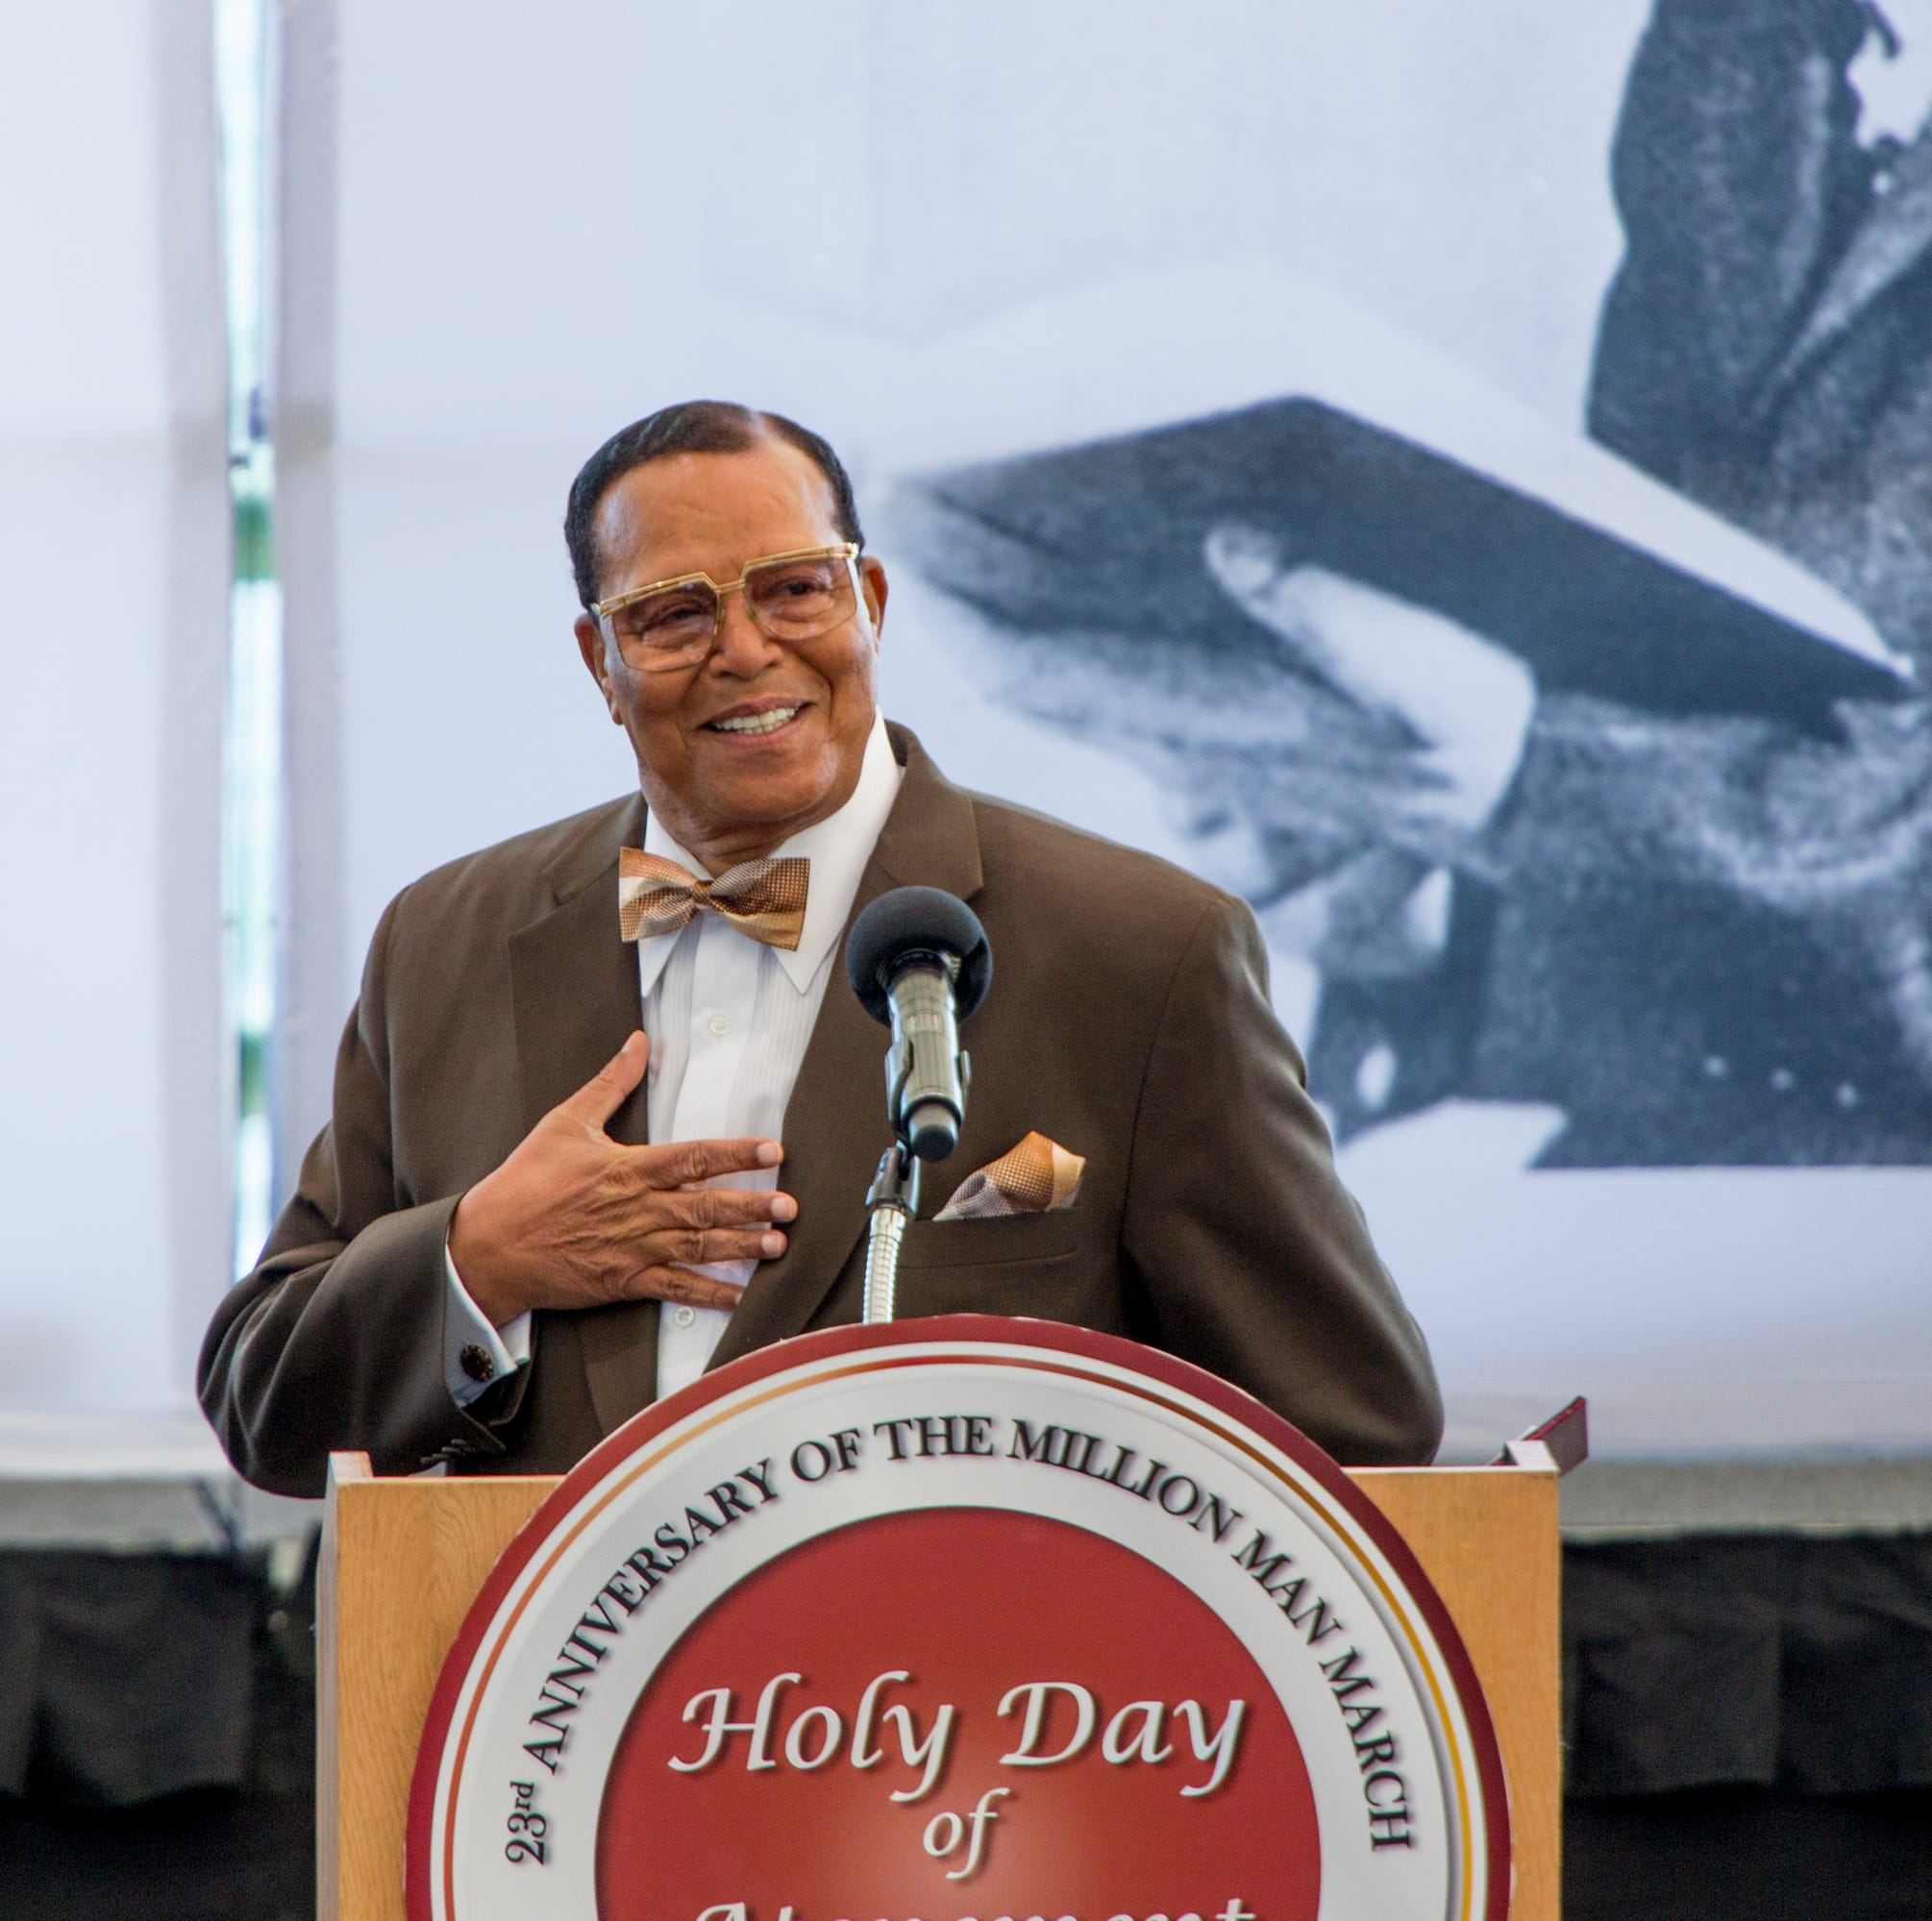 Farrakhan links reparations for blacks to climate change